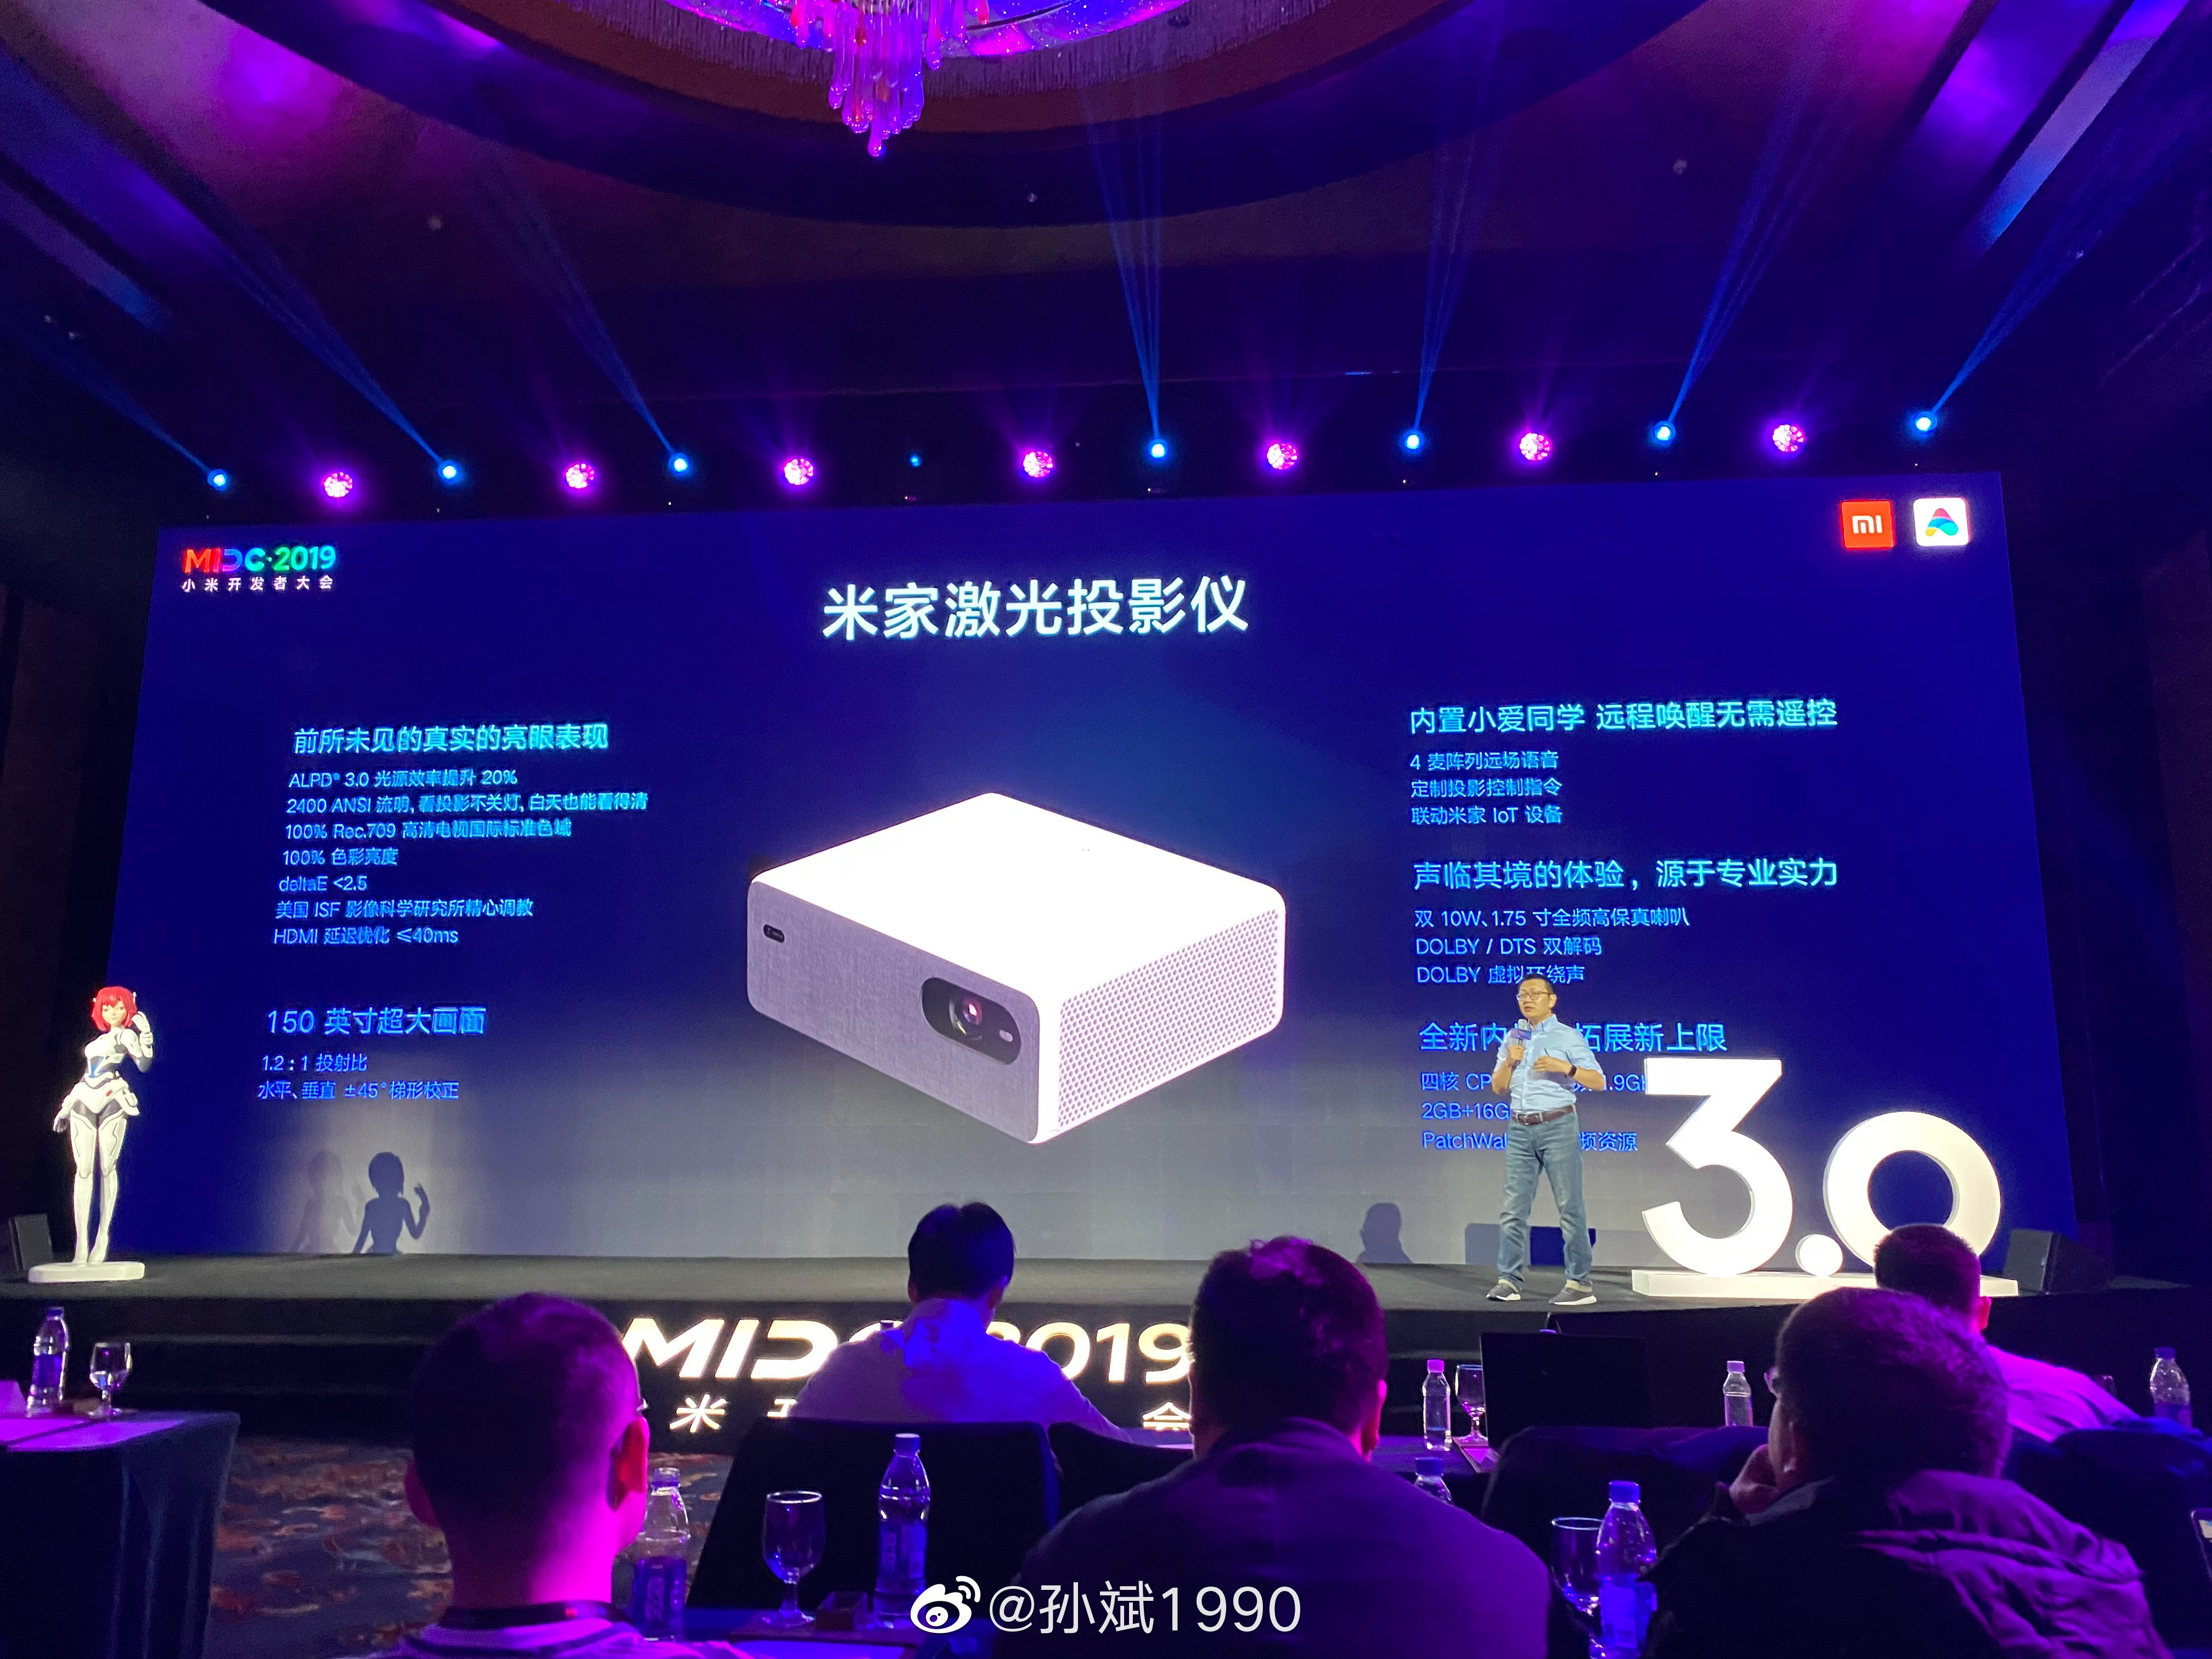 Xiaomi launches Mijia Laser Projector with up to 150-inches 8K